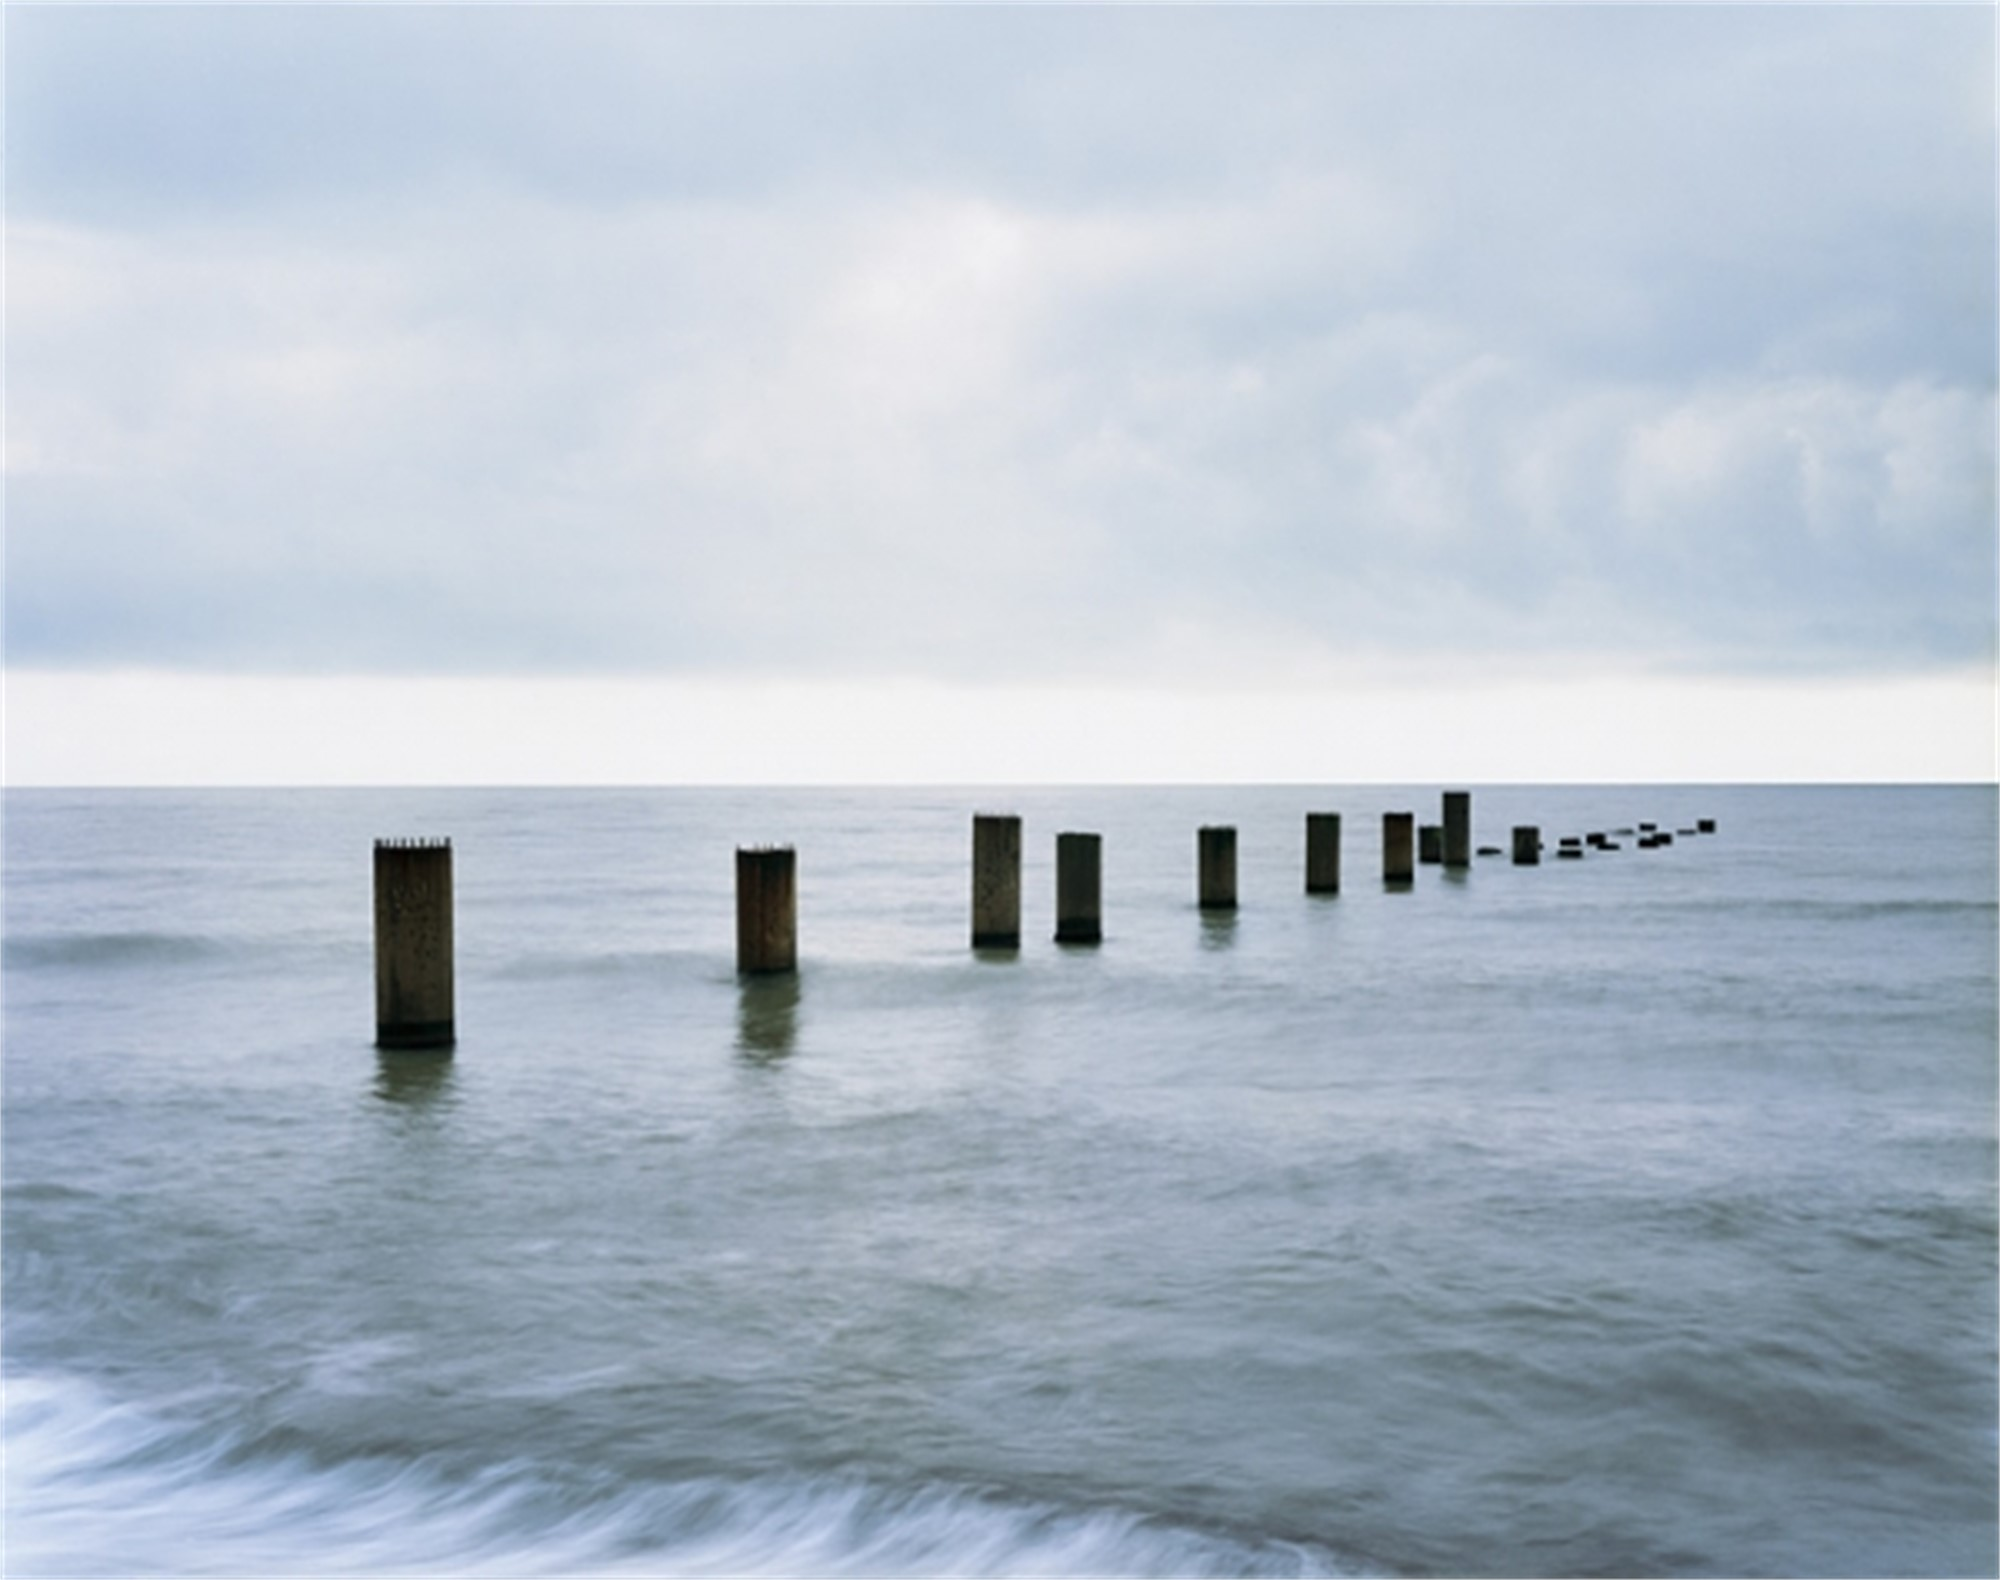 Jetty by Eric Baudelaire